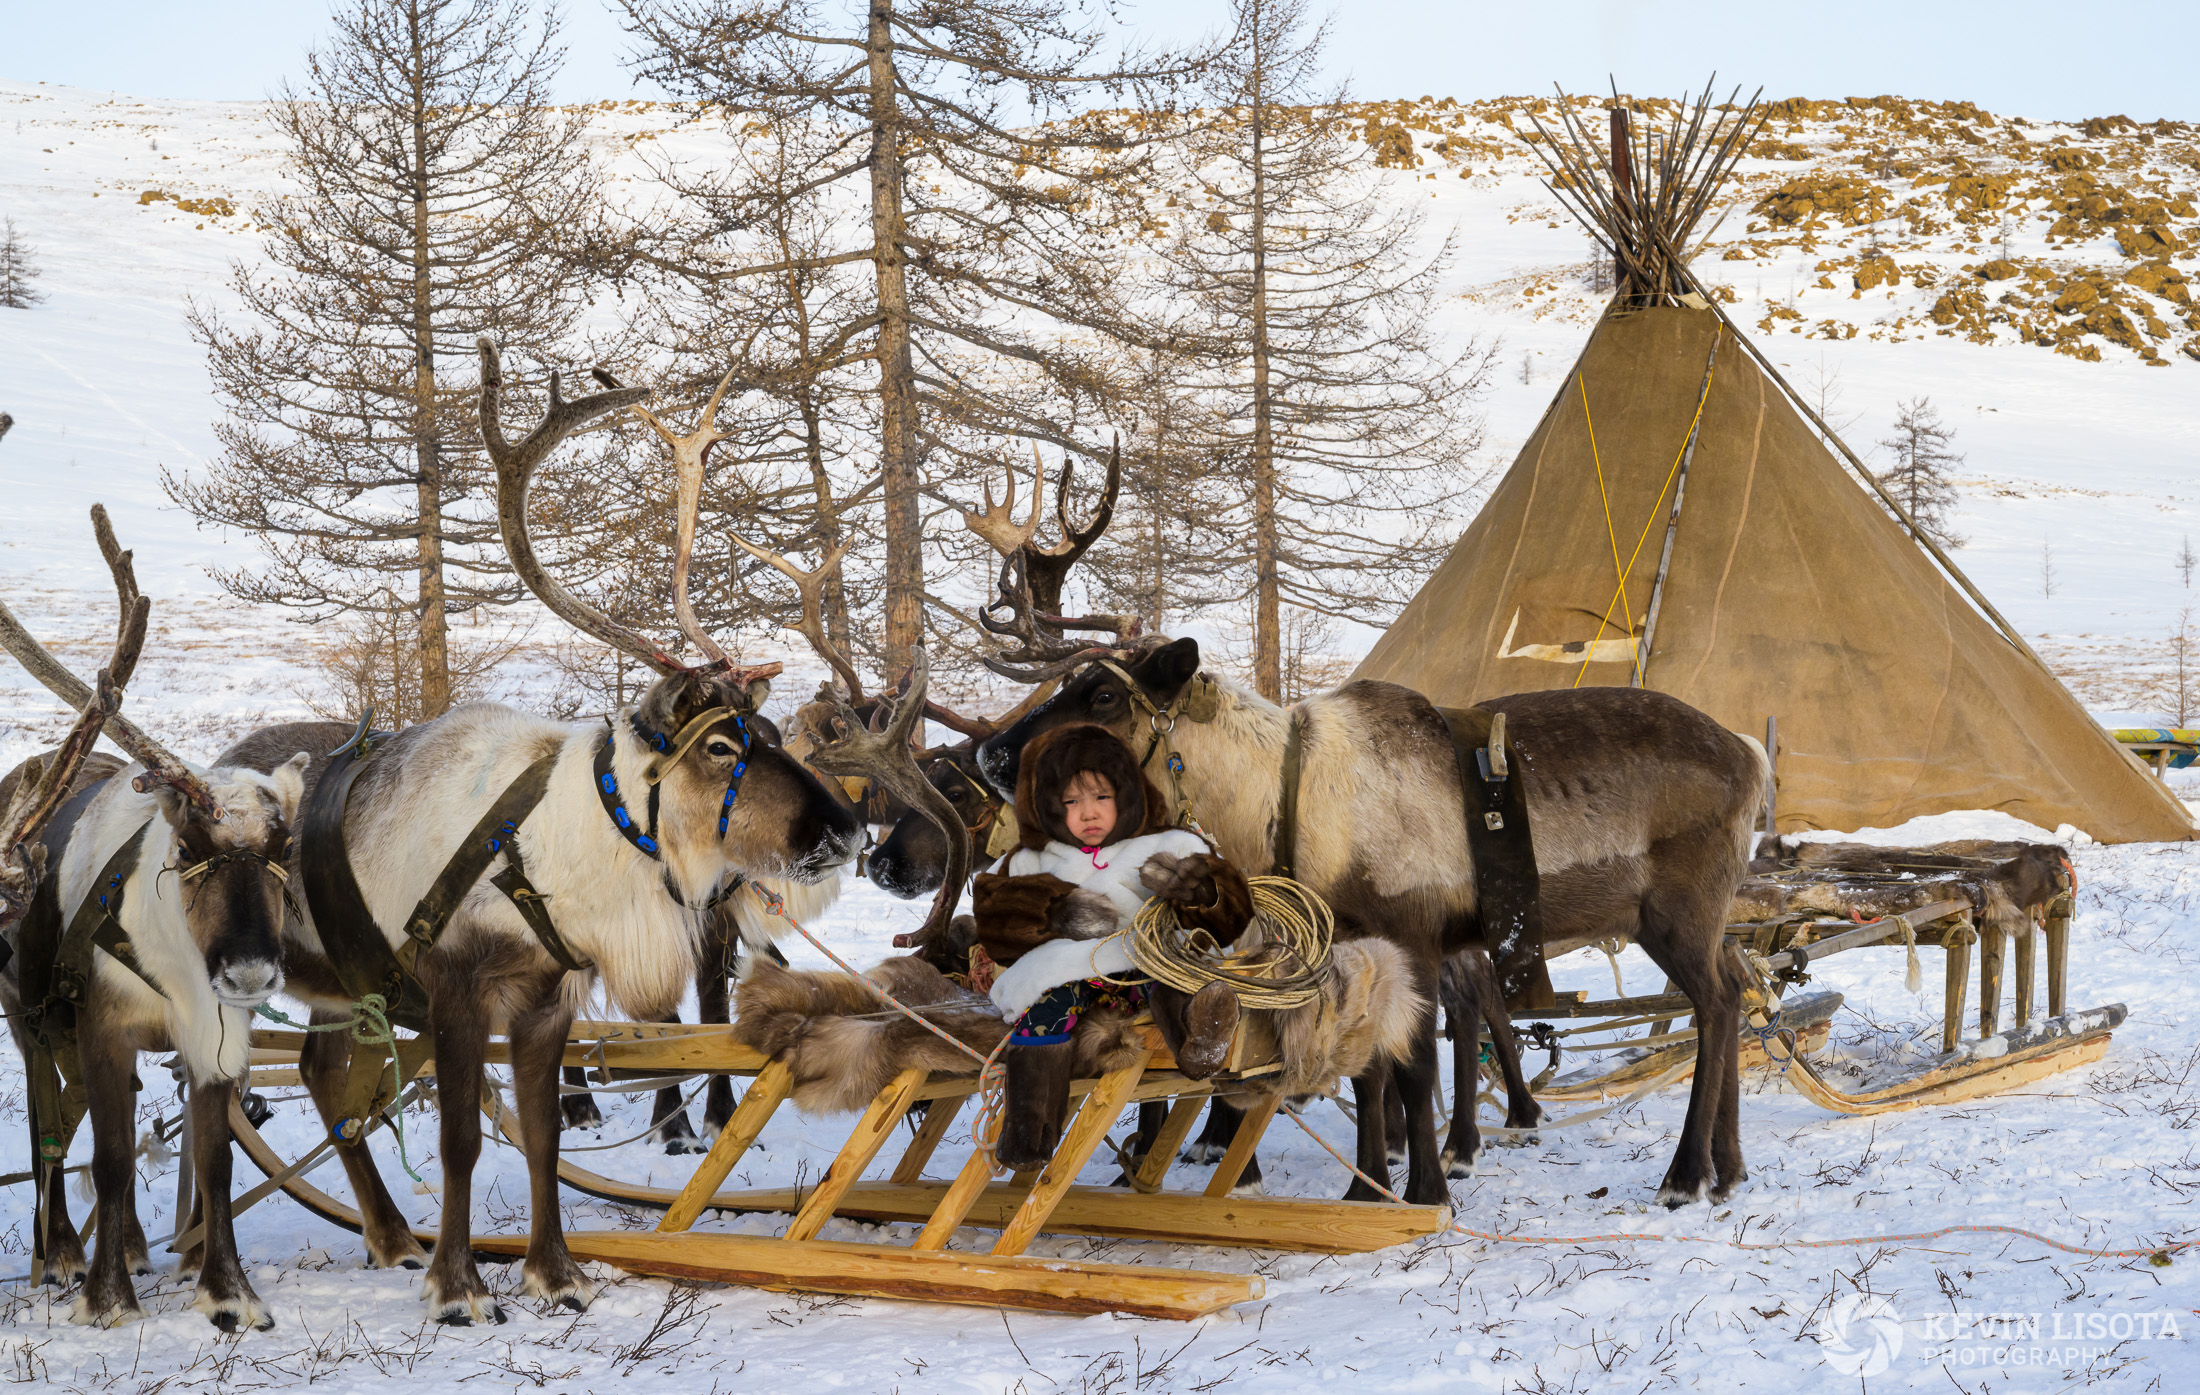 Nenets child with reindeer